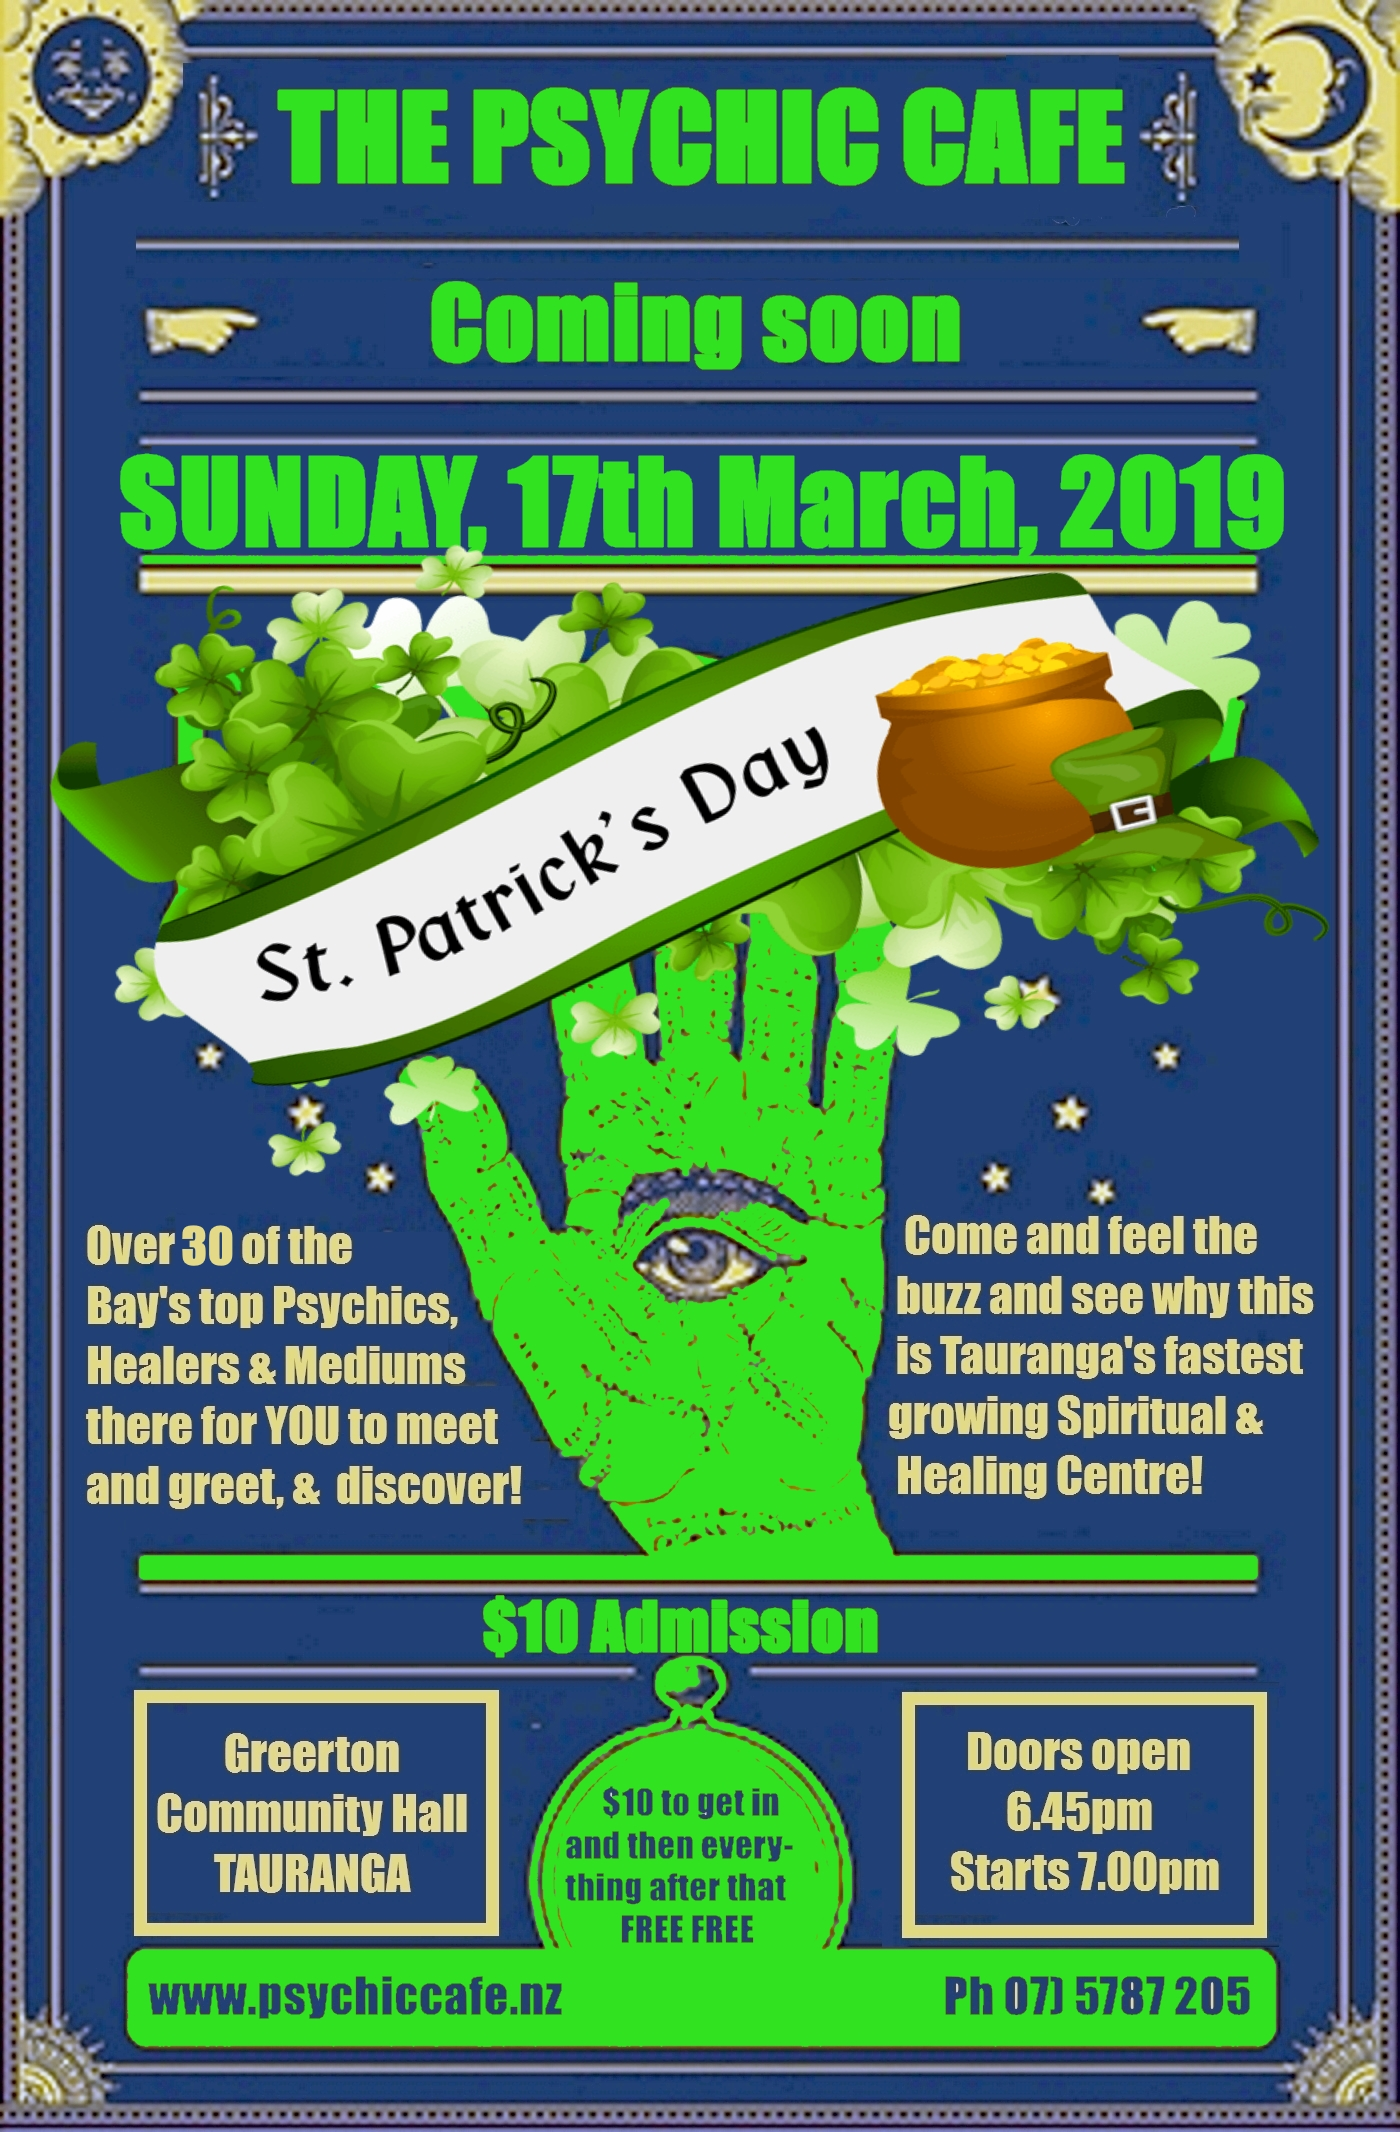 Next Psychic Cafe meets St Paddy's Day – 17th March, 2019!